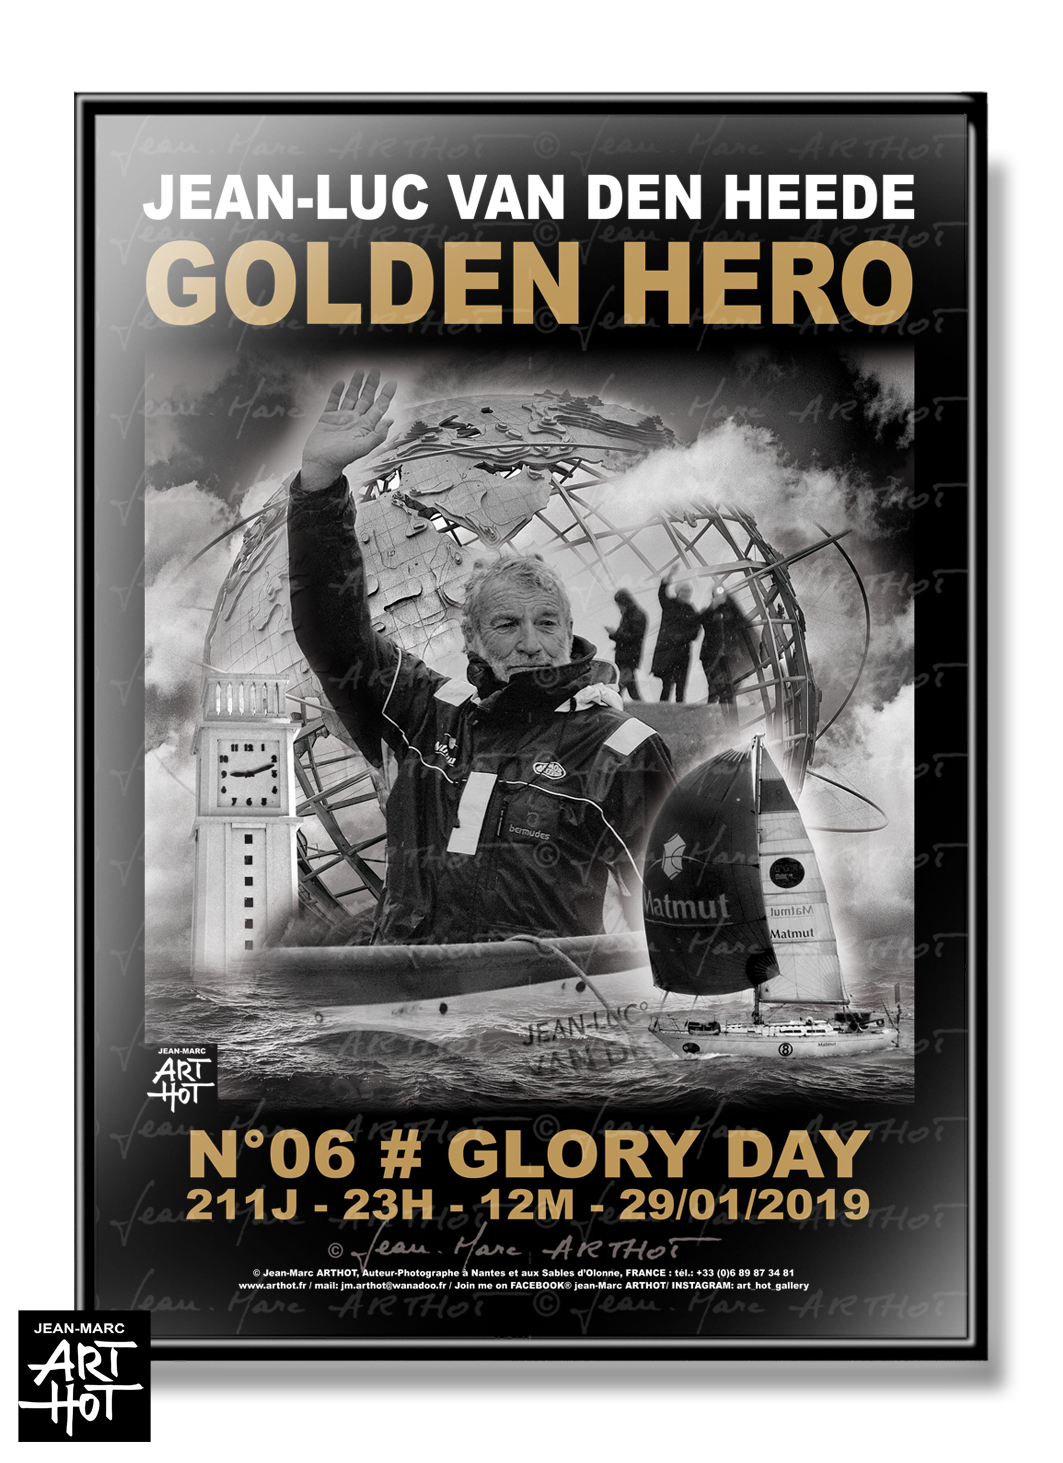 AFFICHE VDH-GOLDEN HERO-N°06-Glory Day